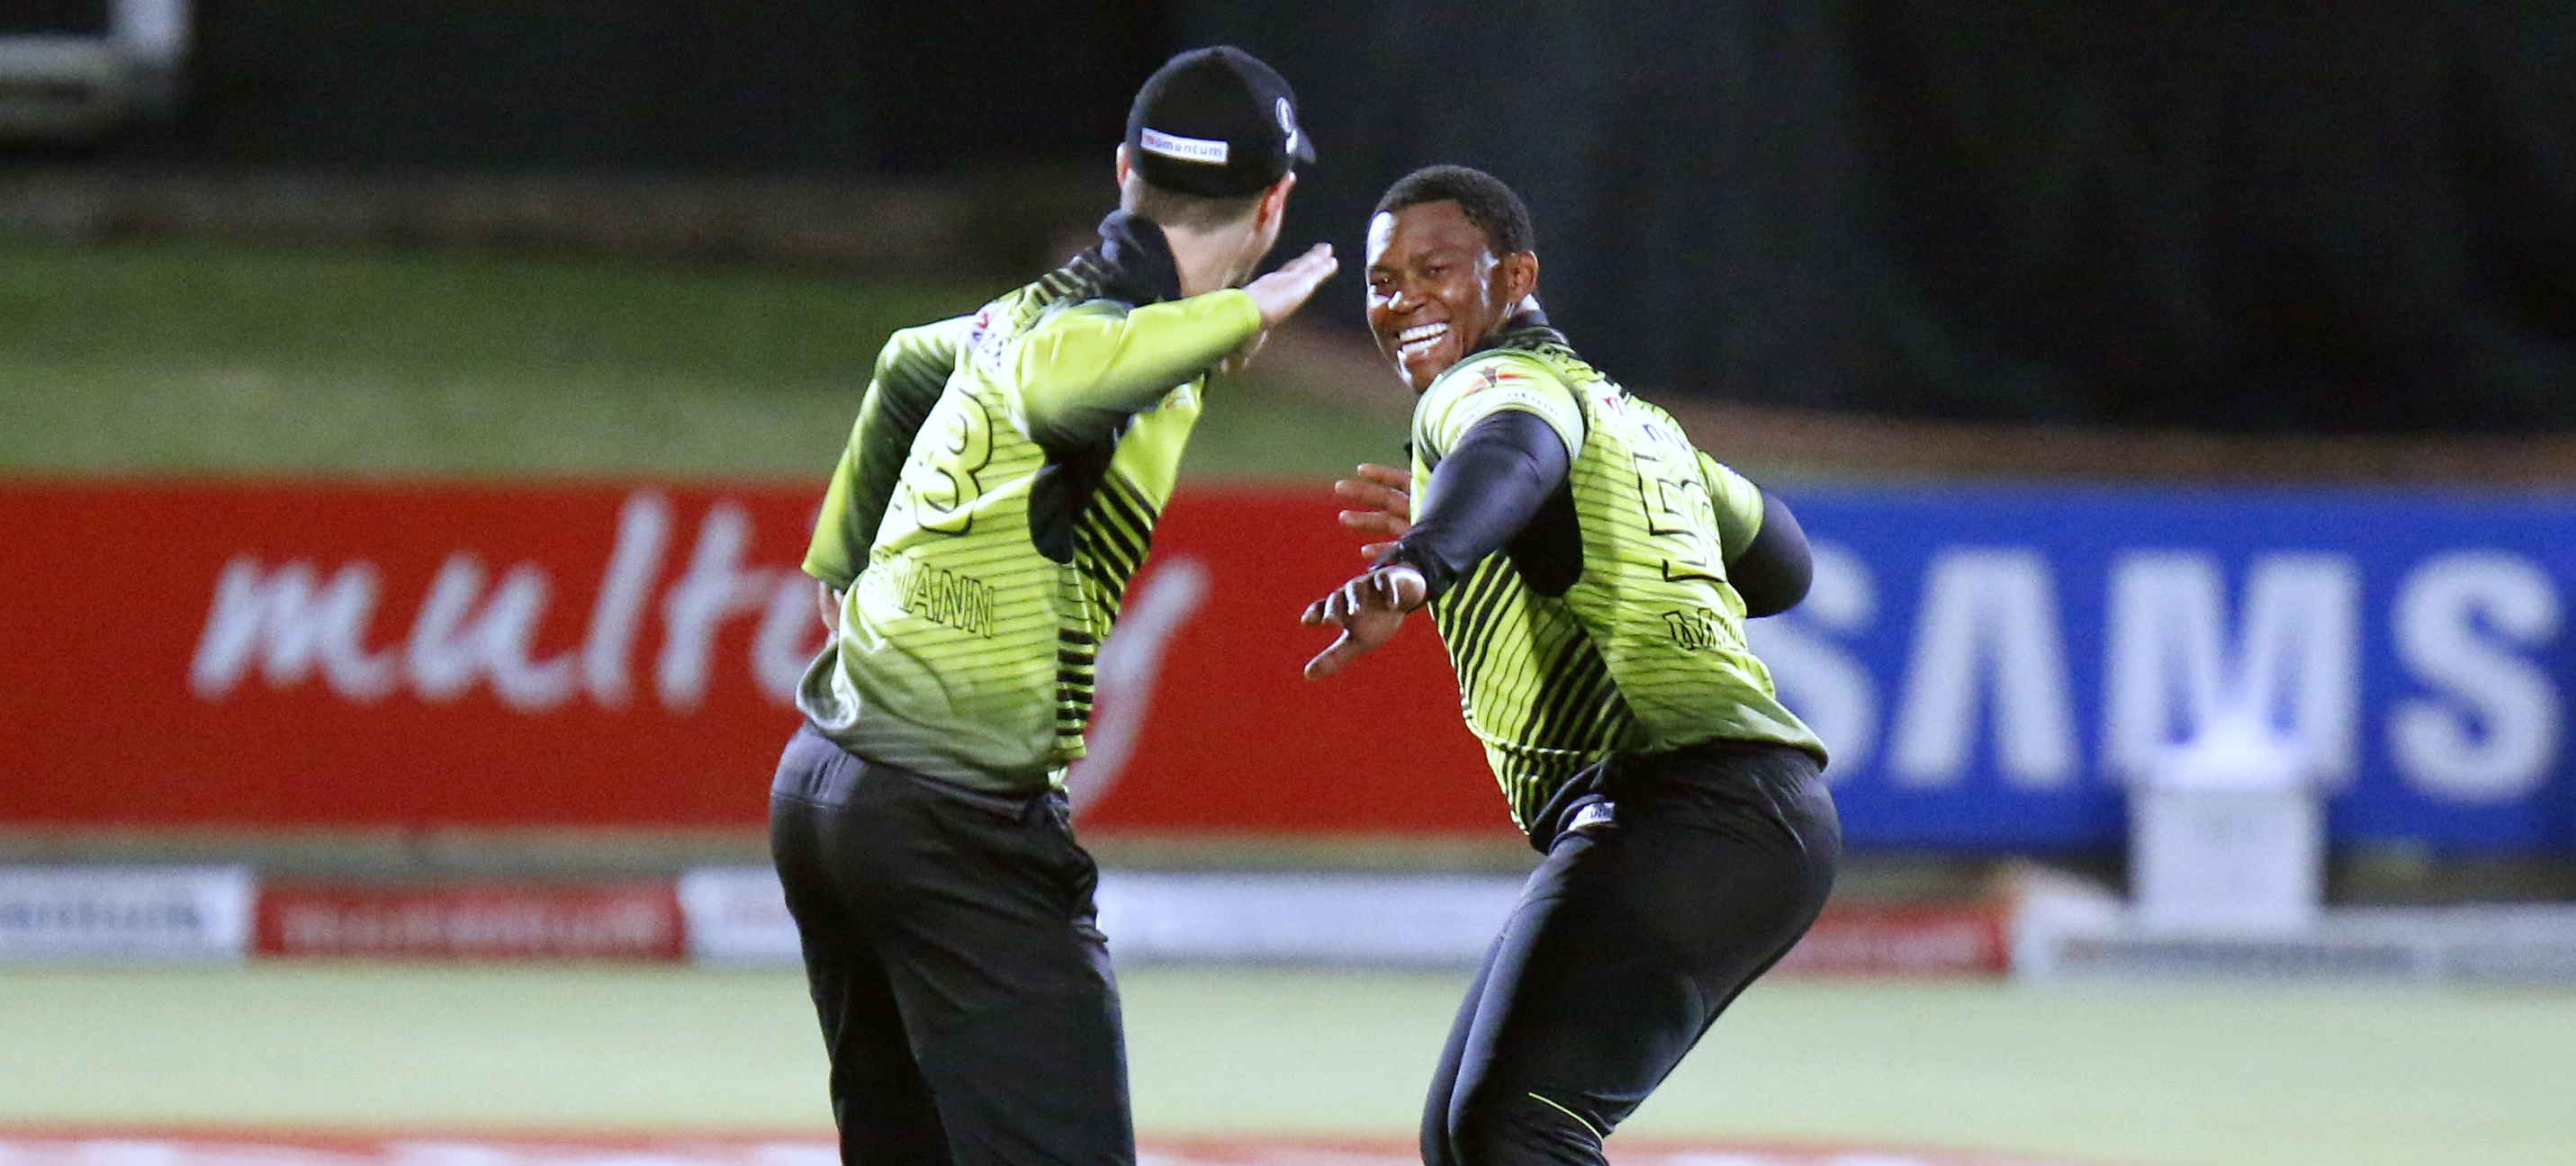 PORT ELIZABETH, SOUTH AFRICA - MARCH 17: Sisanda Magala of the Warriors (R) and Colin Ackermann of the Warriors (L) celebrate a wicket during the Momentum One Day Cup match between Warriors and VKB Knights at St Georges Park on March 17, 2017 in Port Elizabeth, South Africa. (Photo by Michael Sheehan/Gallo Images)